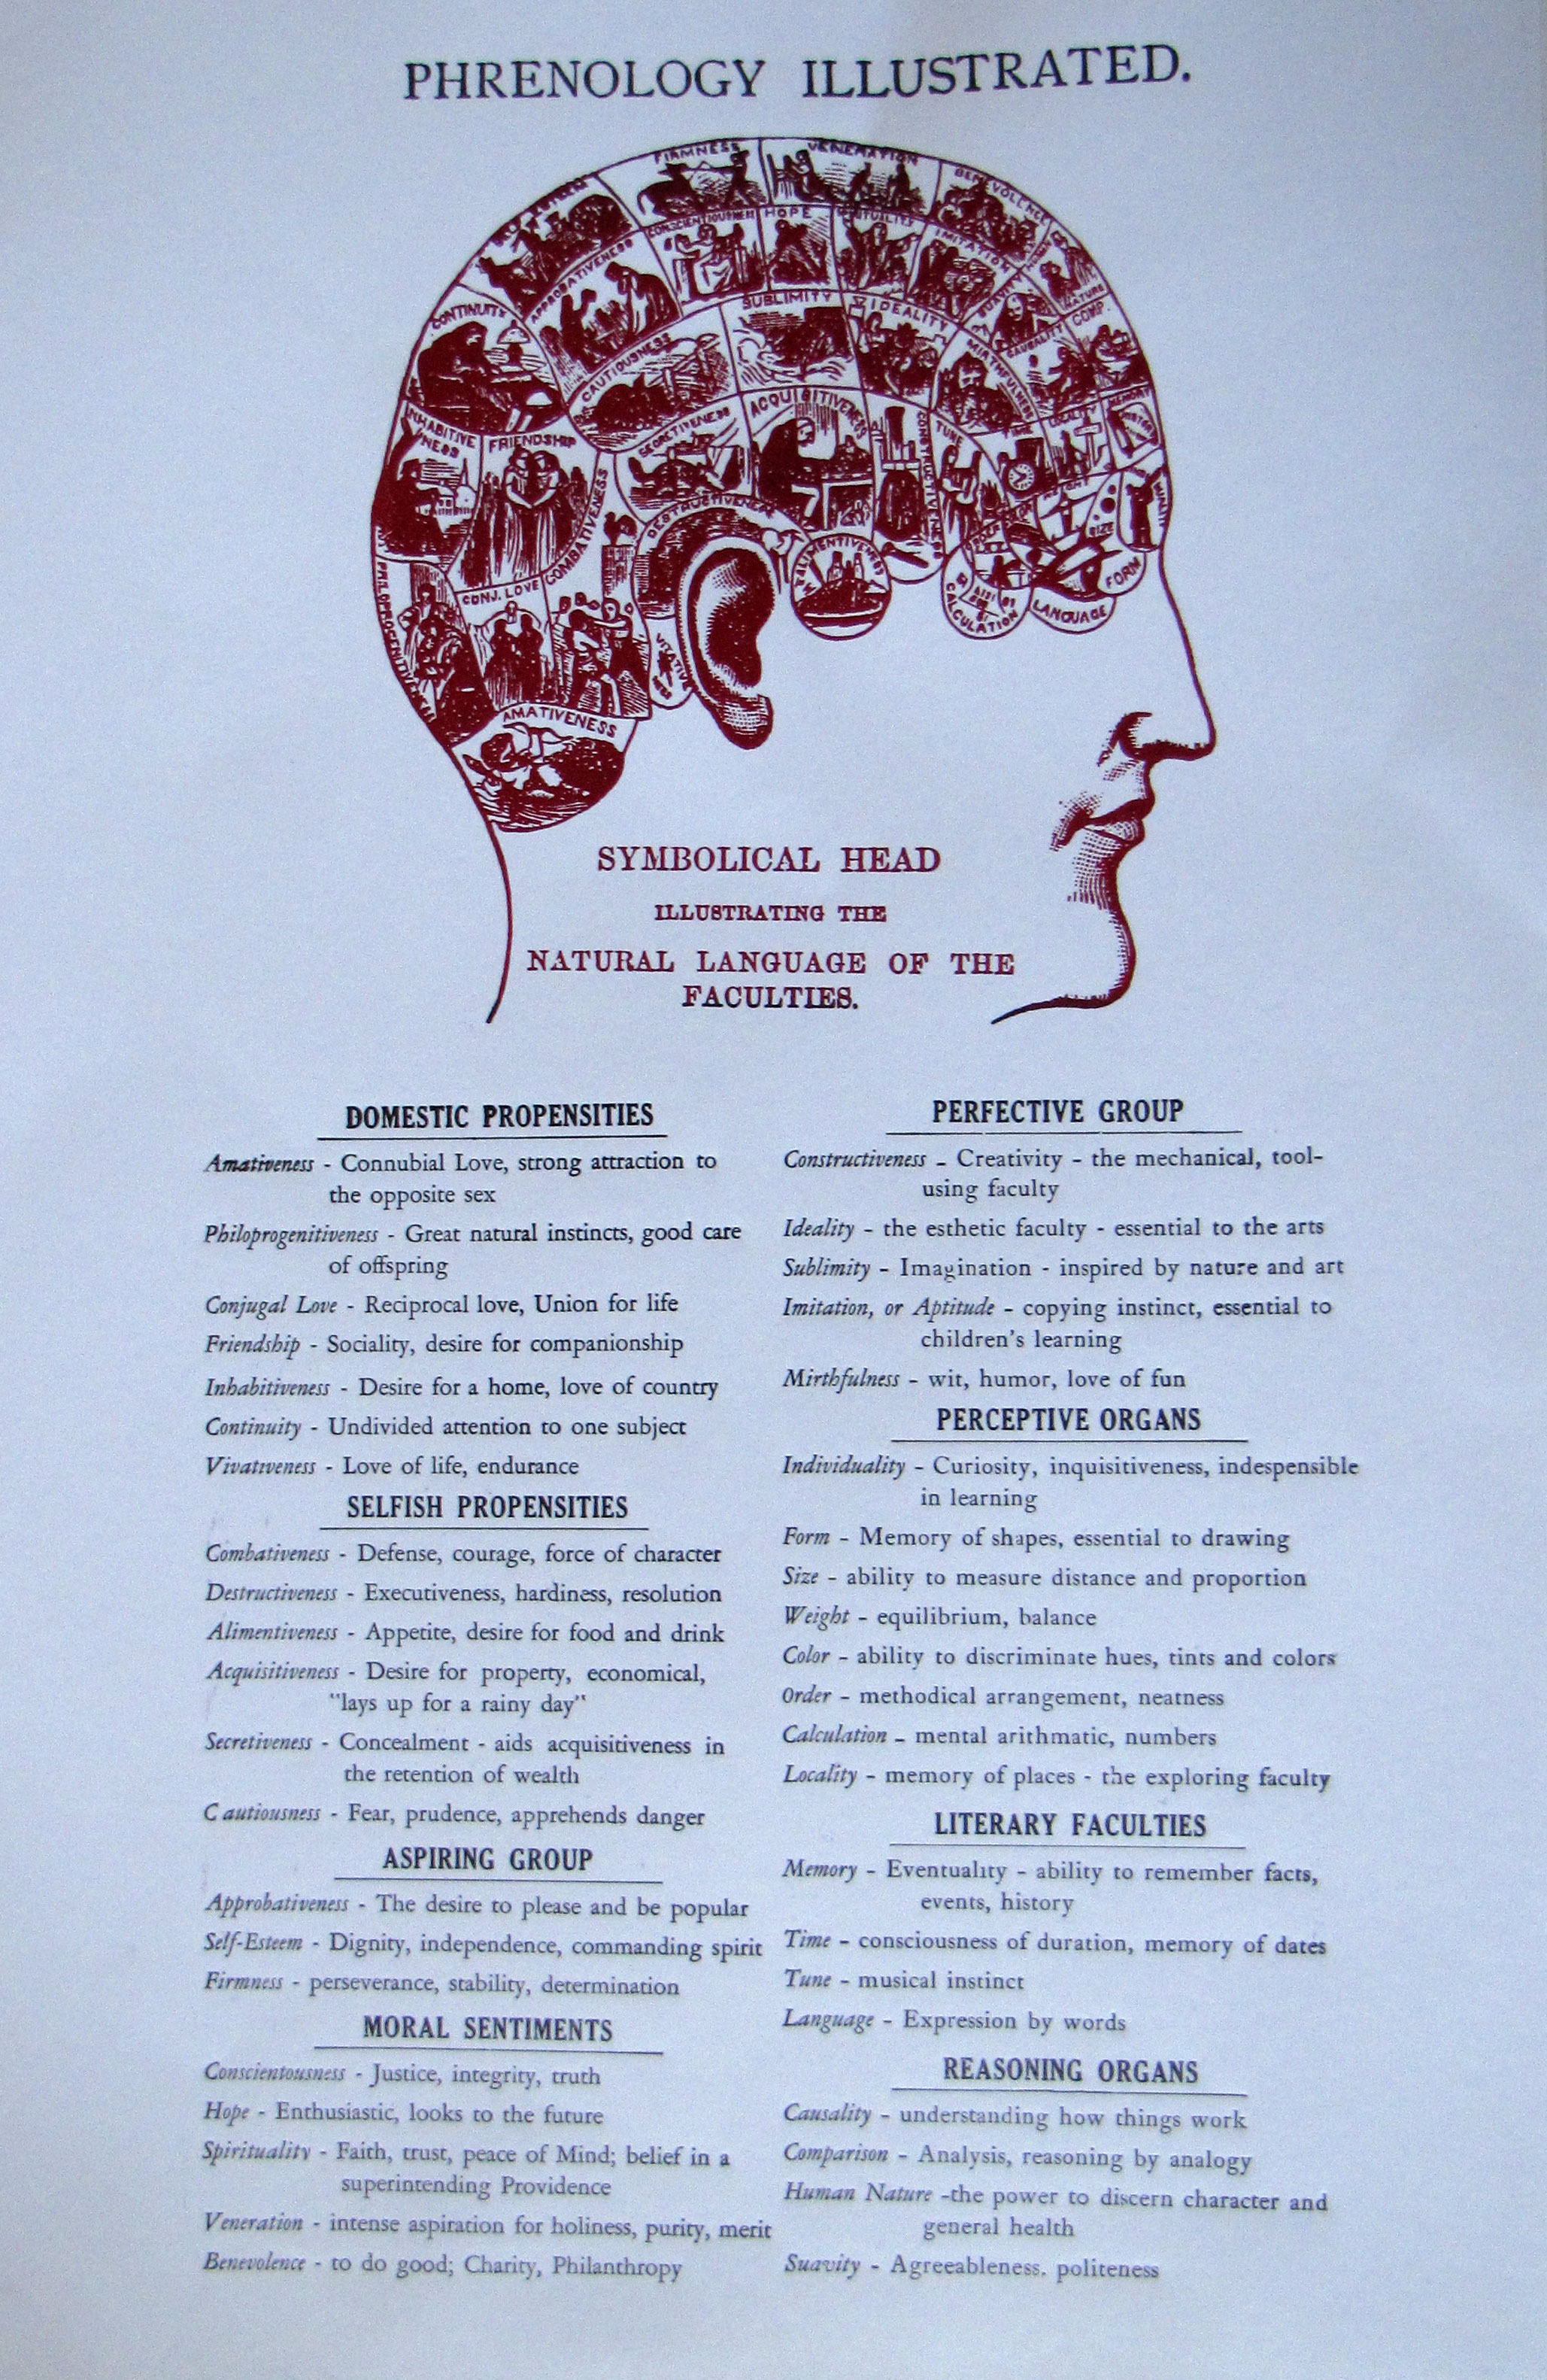 Phrenology poster, The Farmers' Museum Printing Office